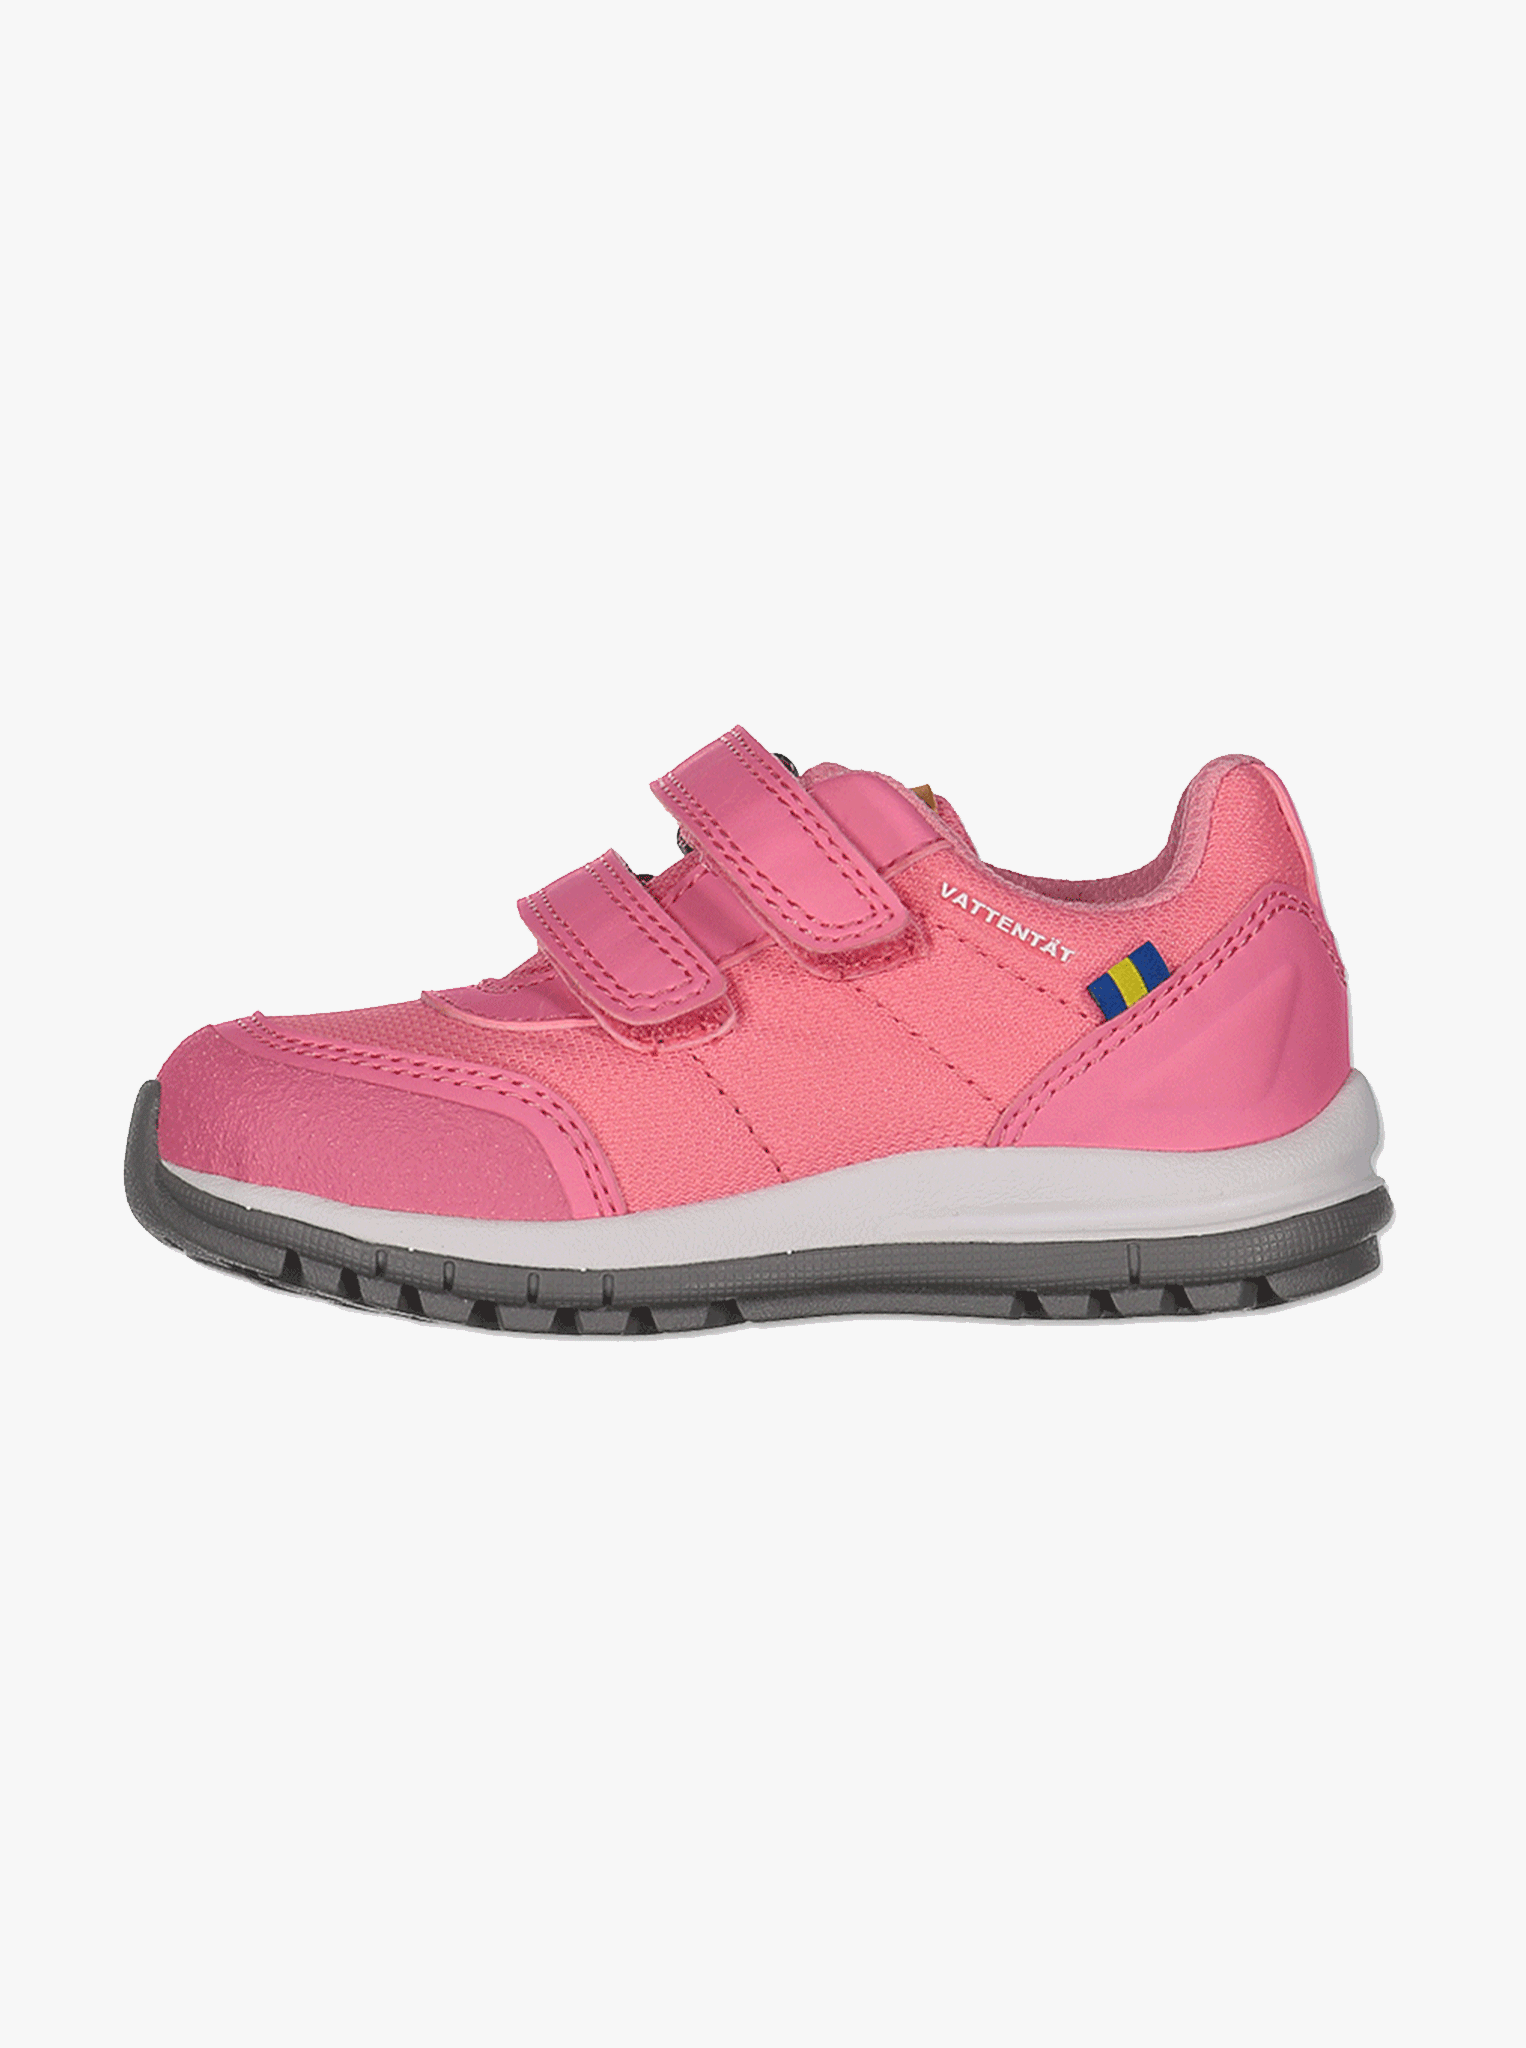 Unisex-Kavat Halland Waterproof Kids Trainers-Pink-UK5 - UK1